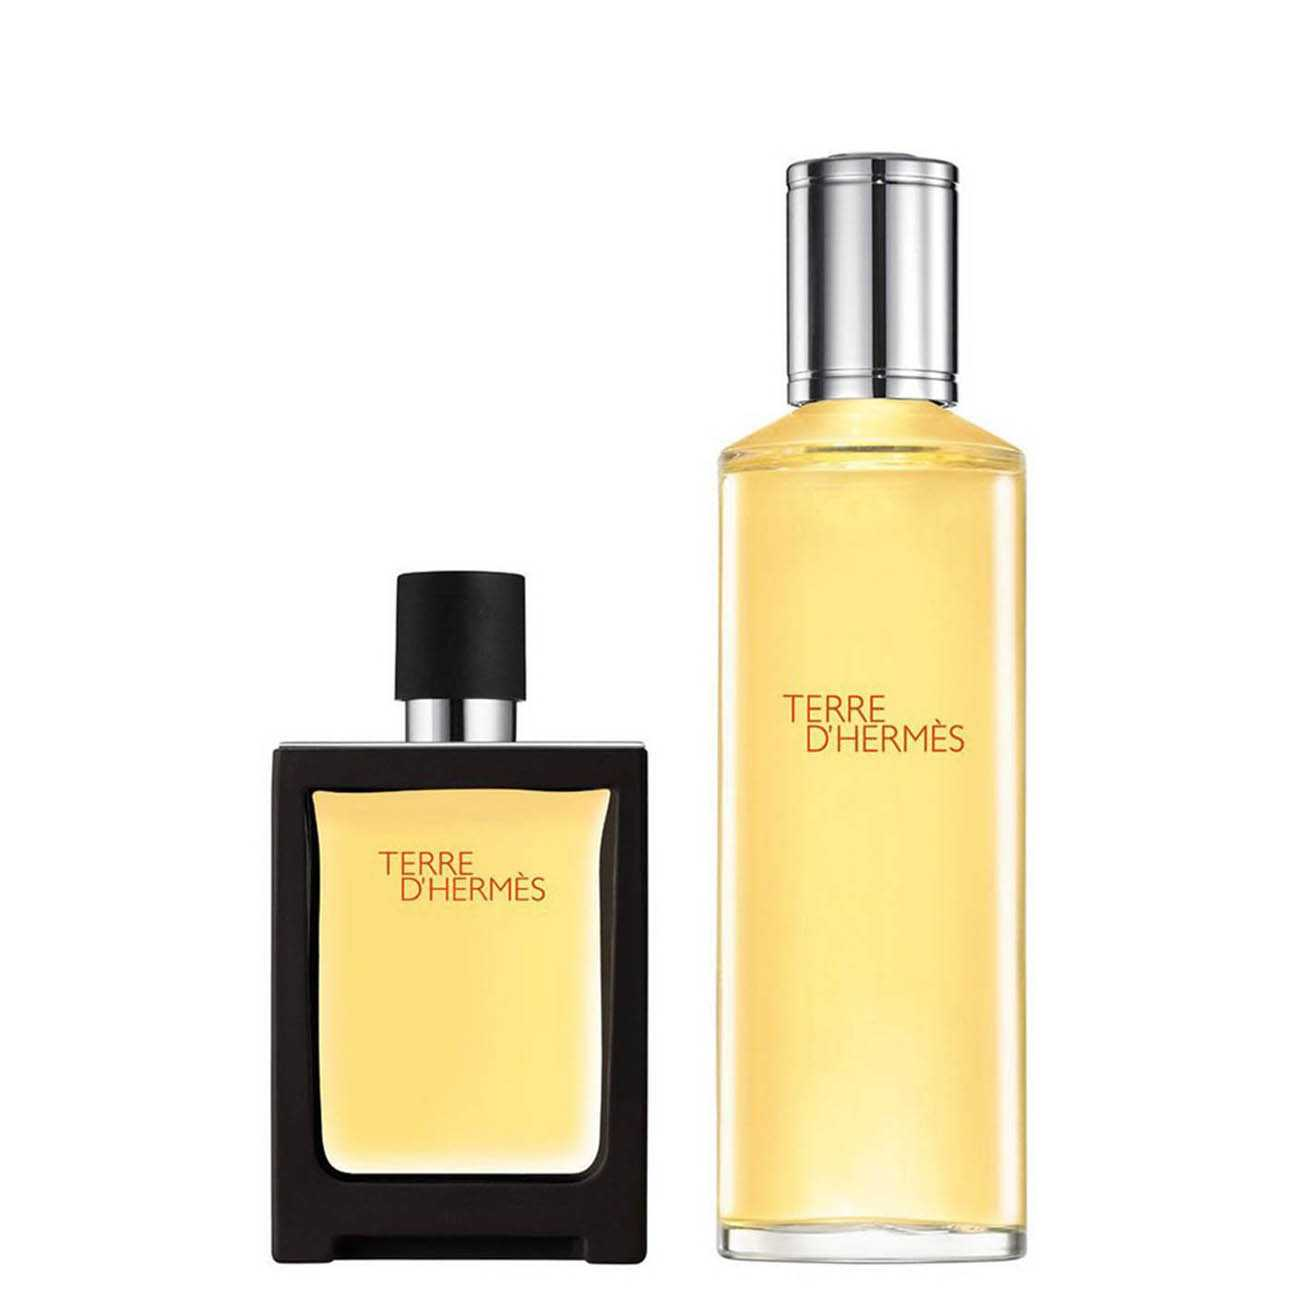 TERRE D'HERMES 155 ML 155ml imagine produs